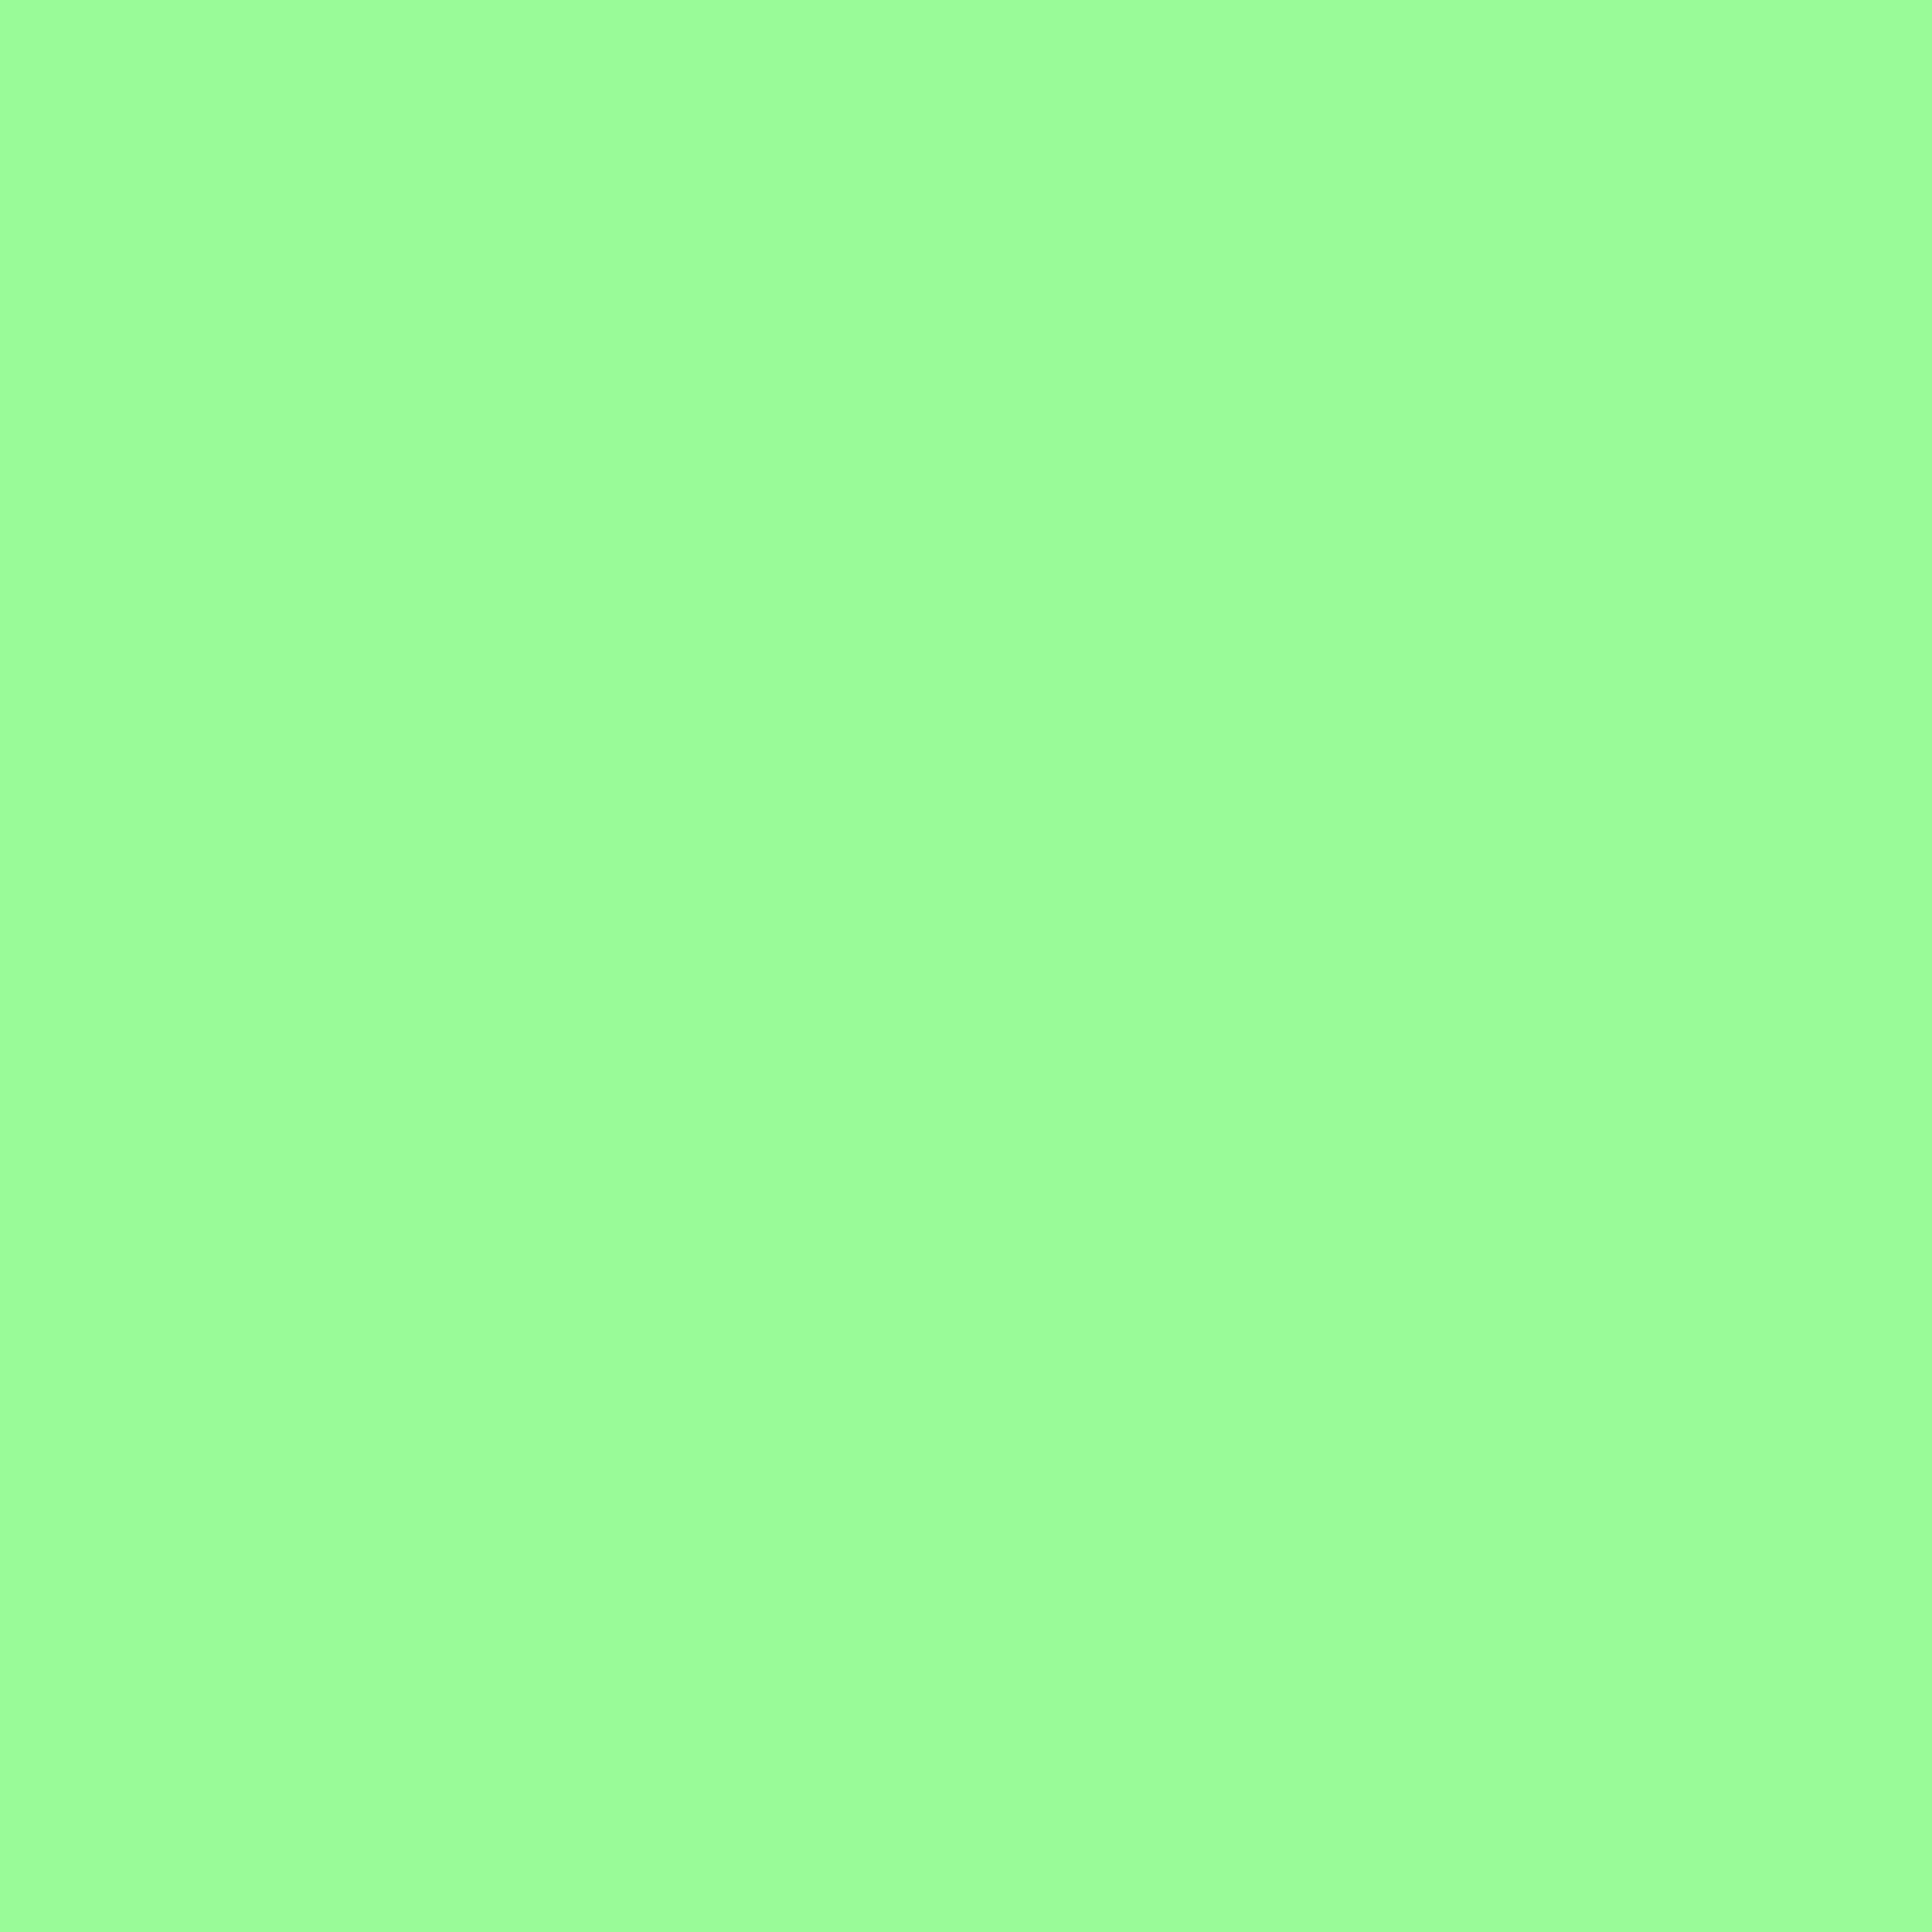 2732x2732 Pale Green Solid Color Background